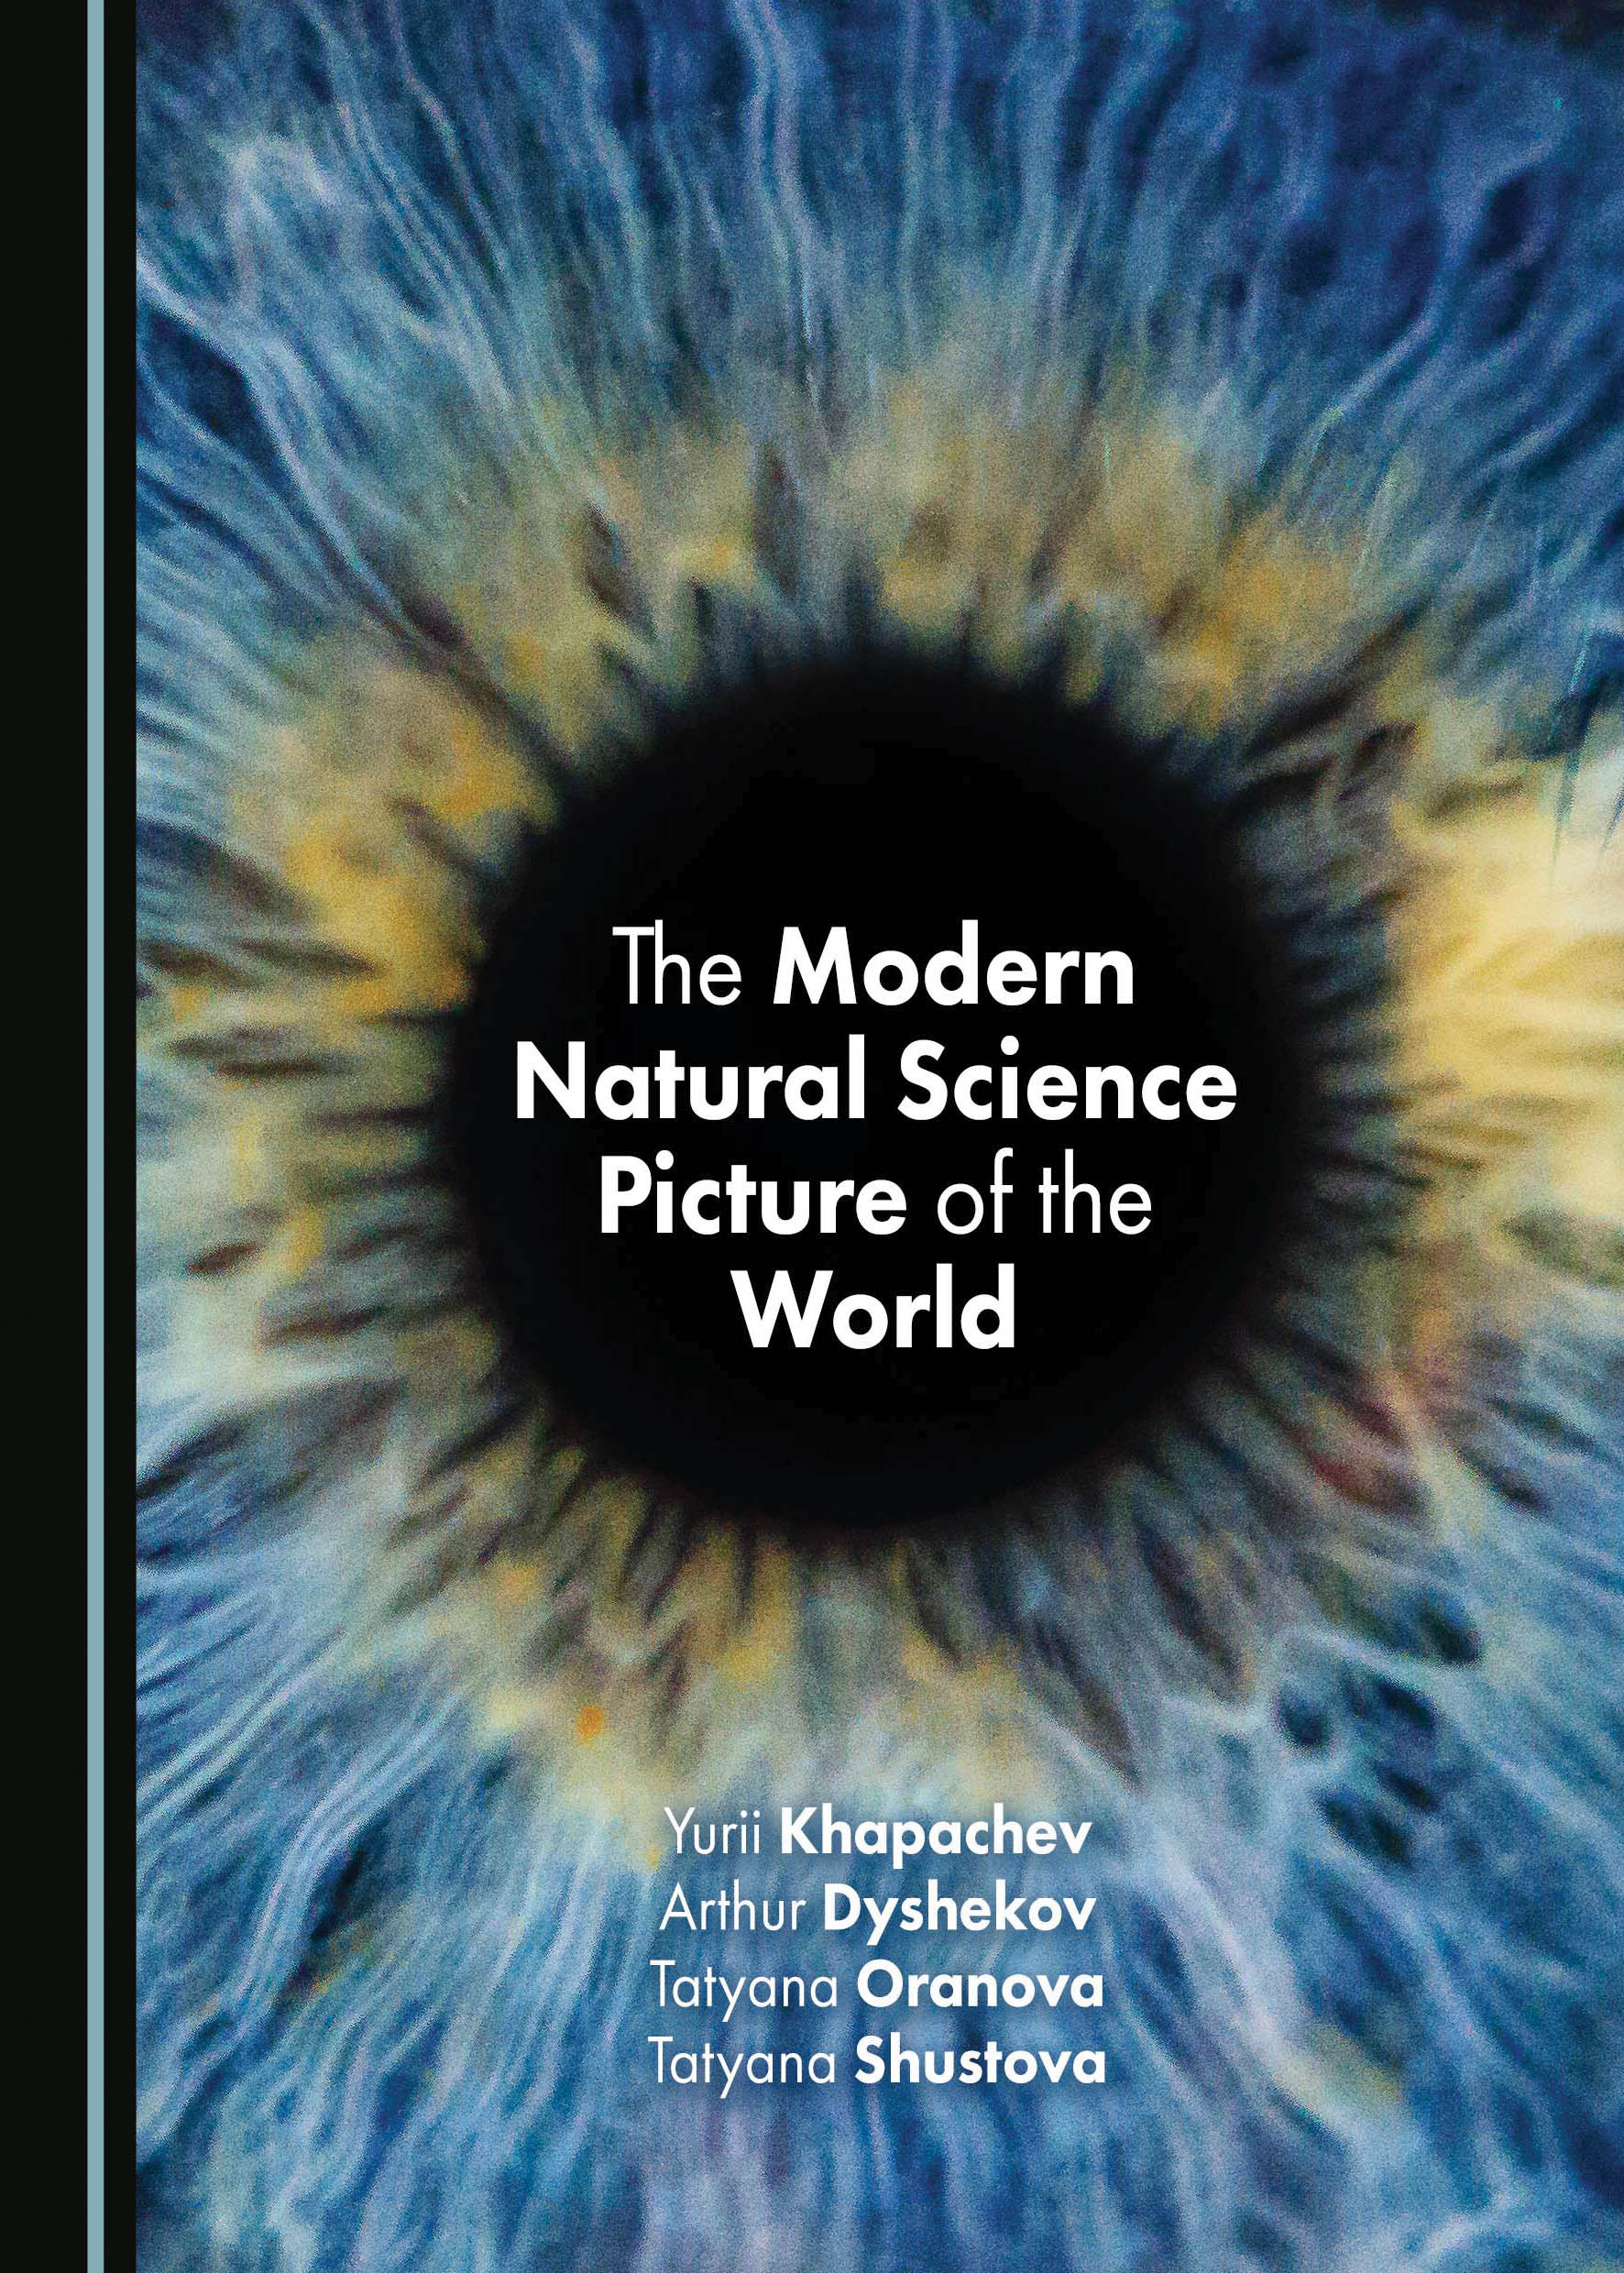 The Modern Natural Science Picture of the World